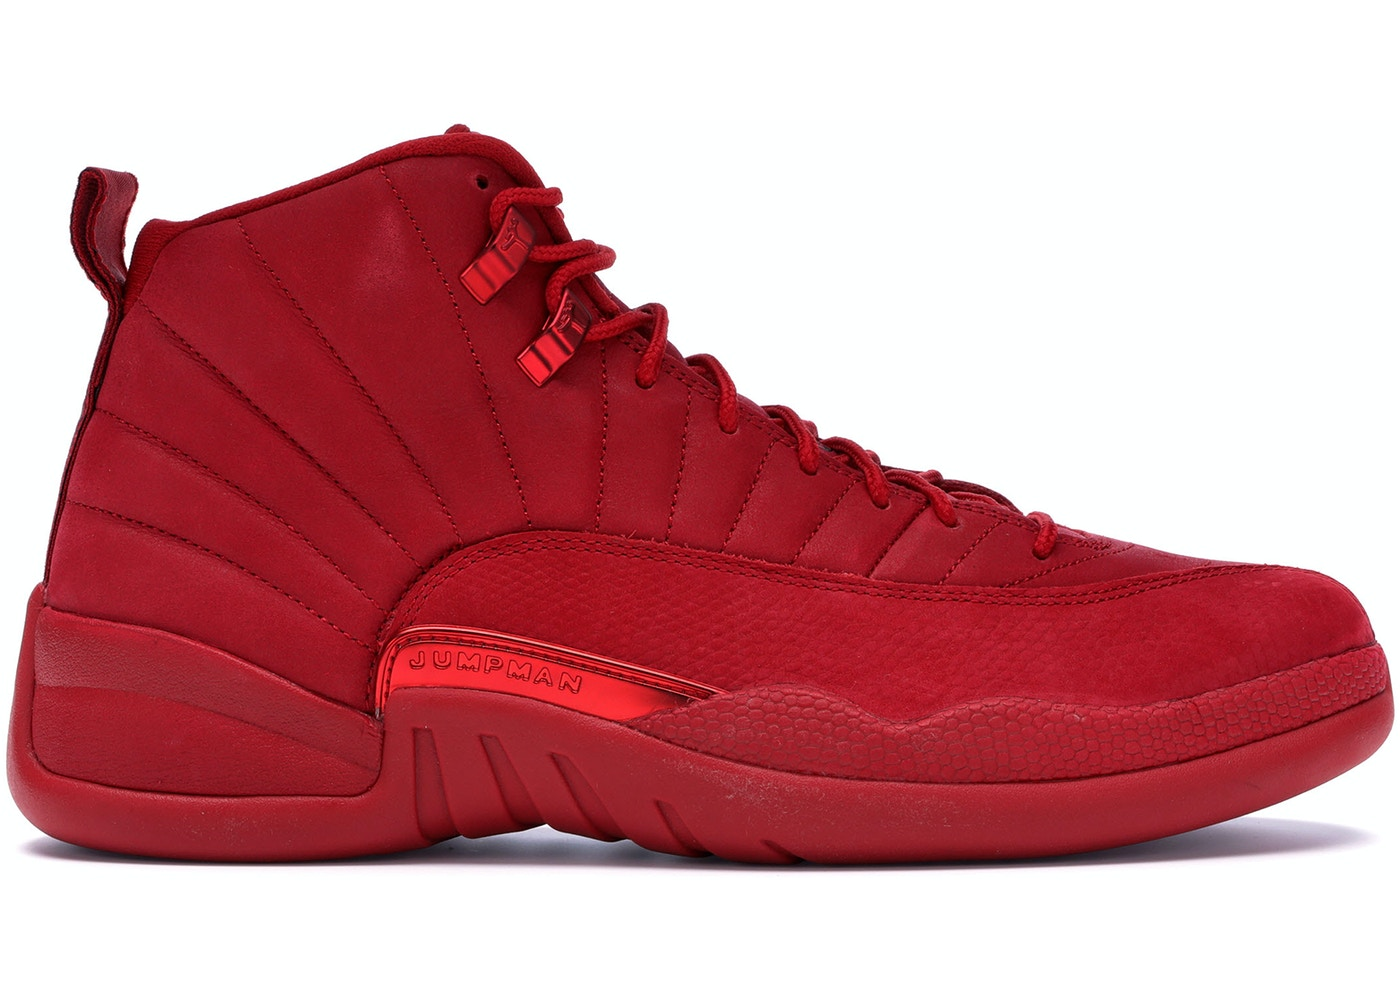 89a743eb3e3 Buy Air Jordan 12 Shoes & Deadstock Sneakers